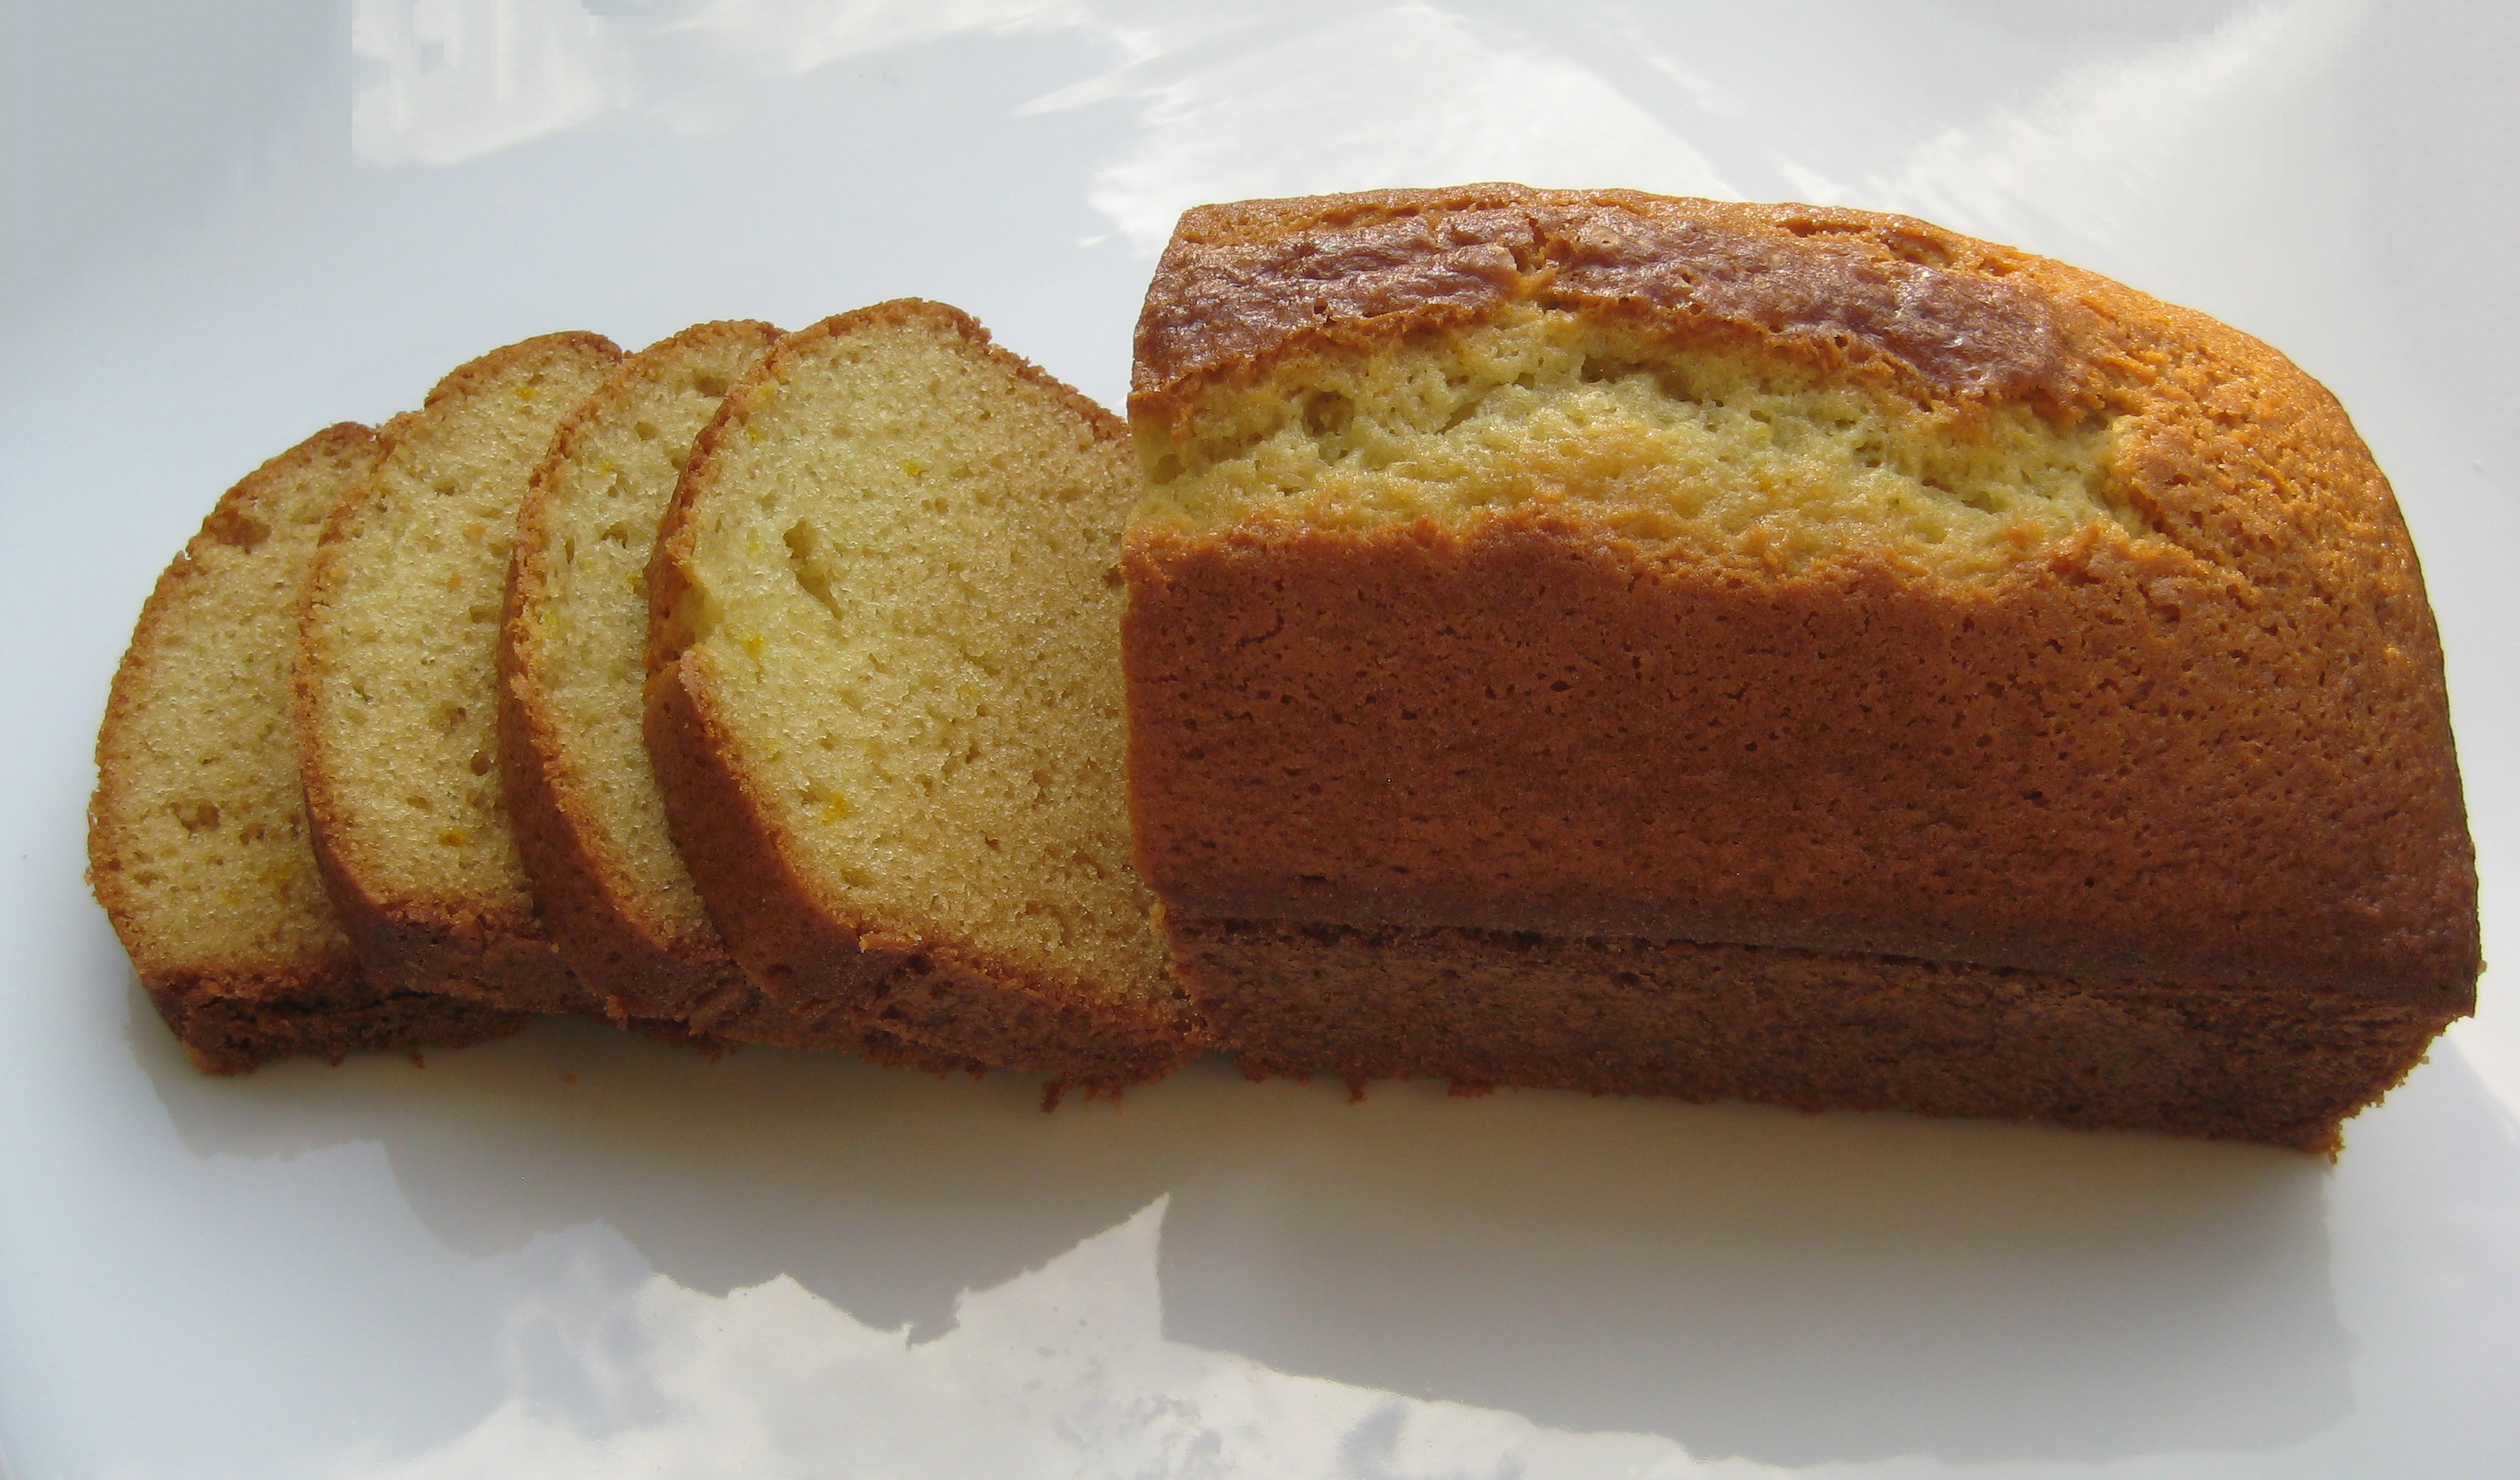 Published October 12, 2009 at 3023 × 1776 in Olive Oil Cake